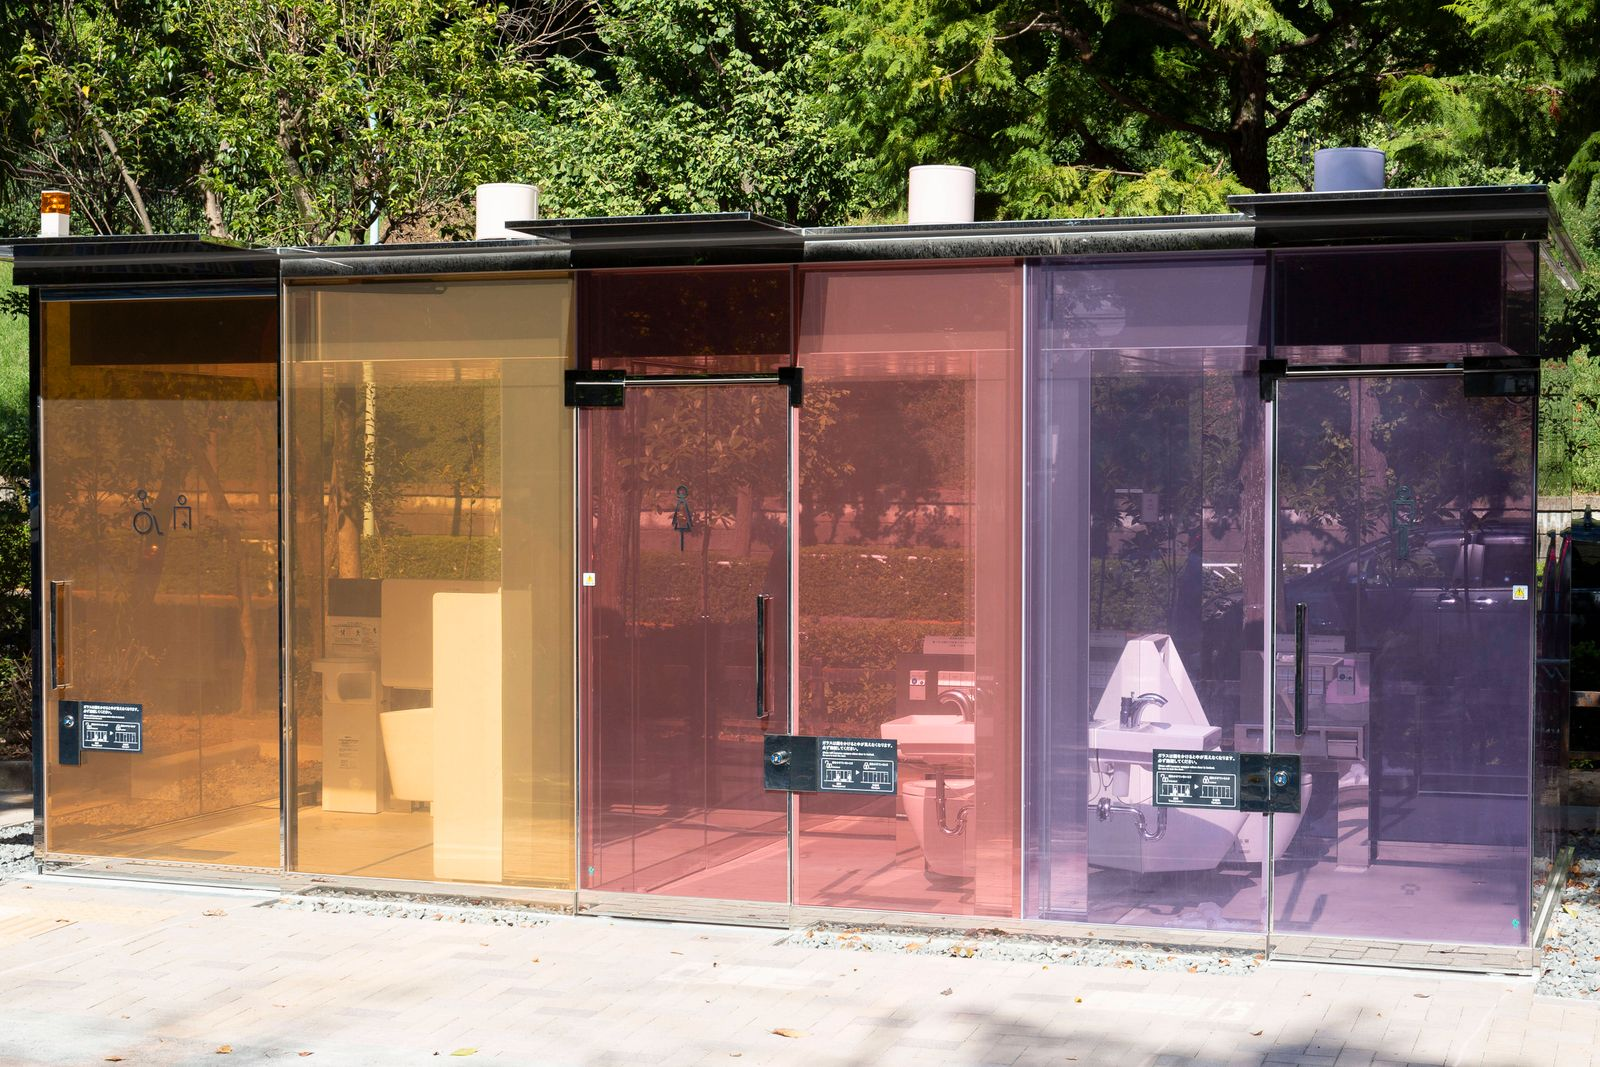 August 21, 2020, Tokyo, Japan: A general view of public toilets with transparent walls at Yoyogi Fukamachi Mini Park in